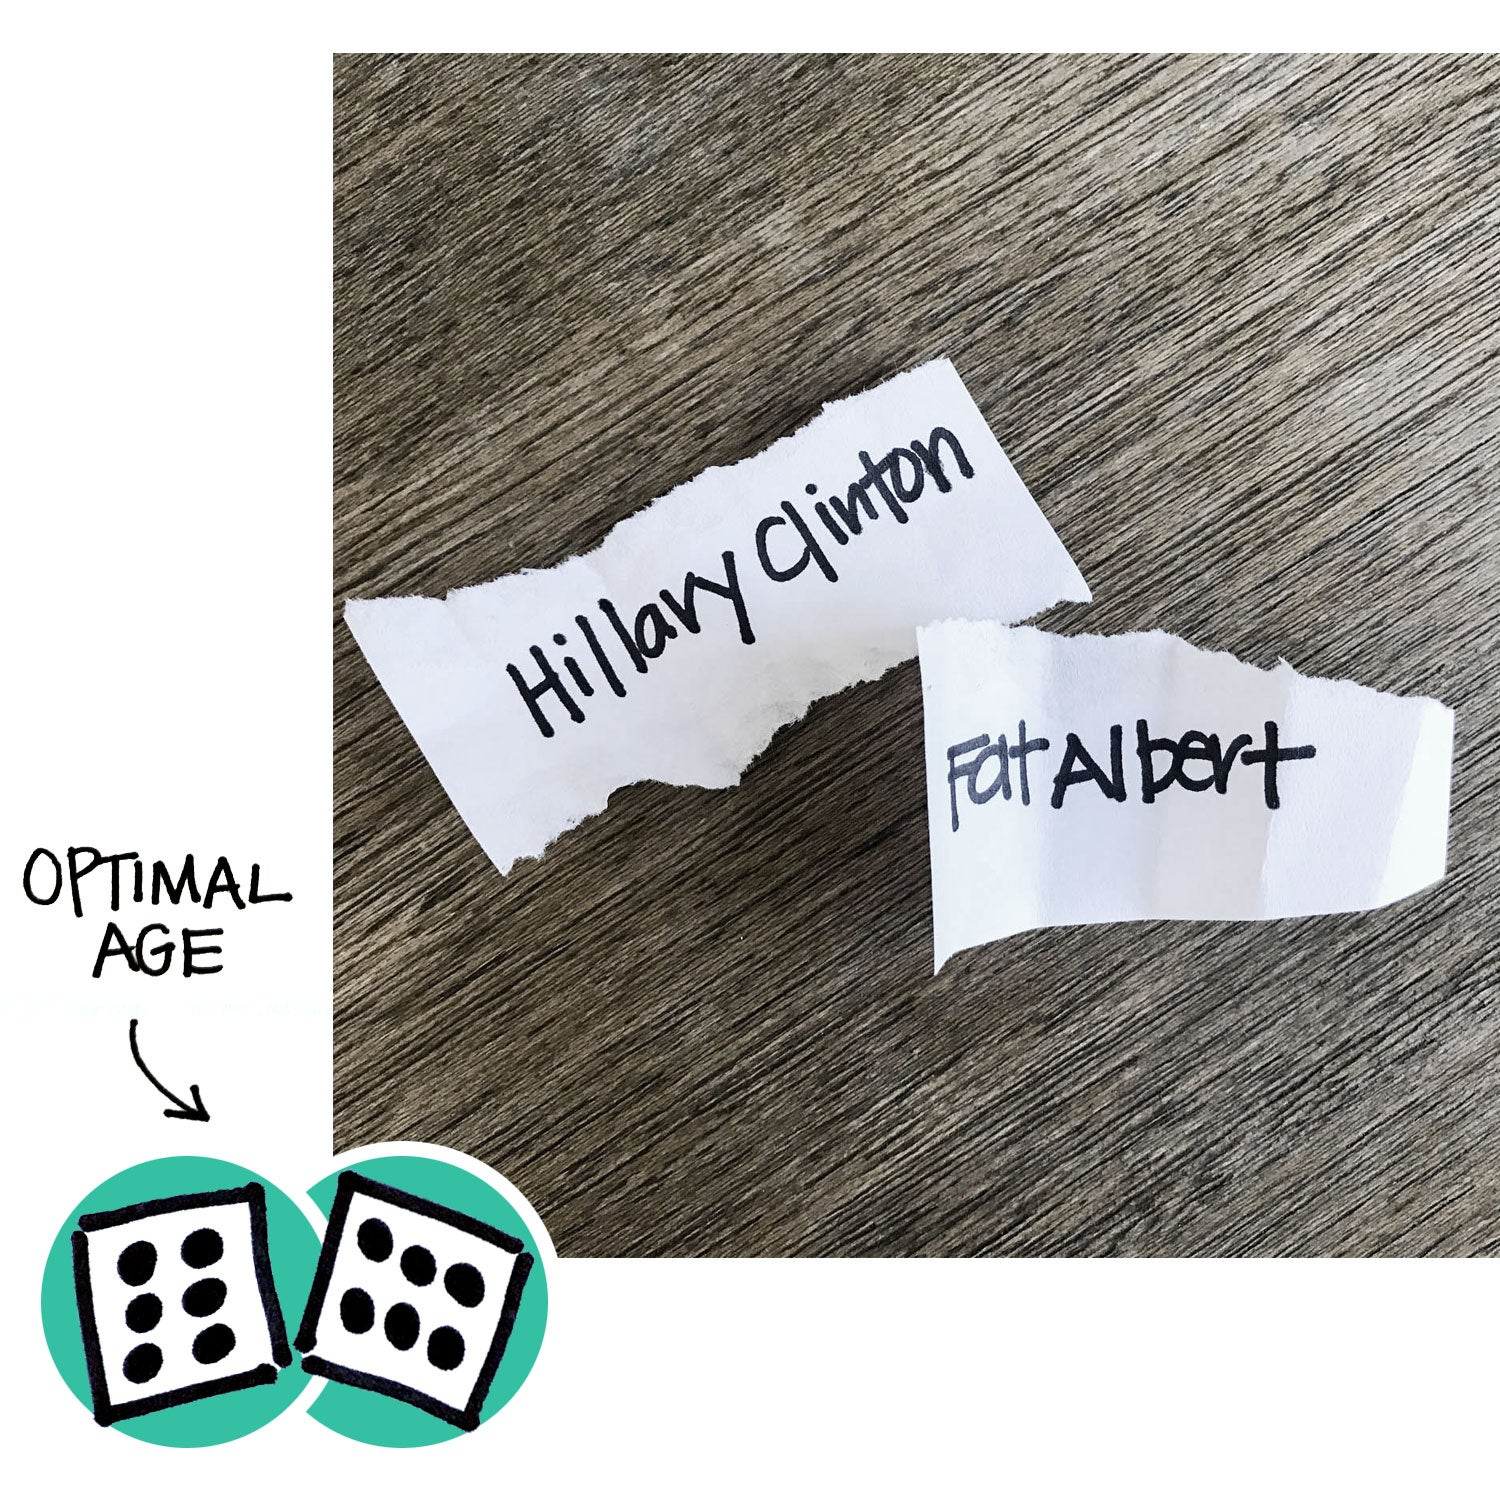 Scraps of paper that say Hillary Clinton and Fat Albert.